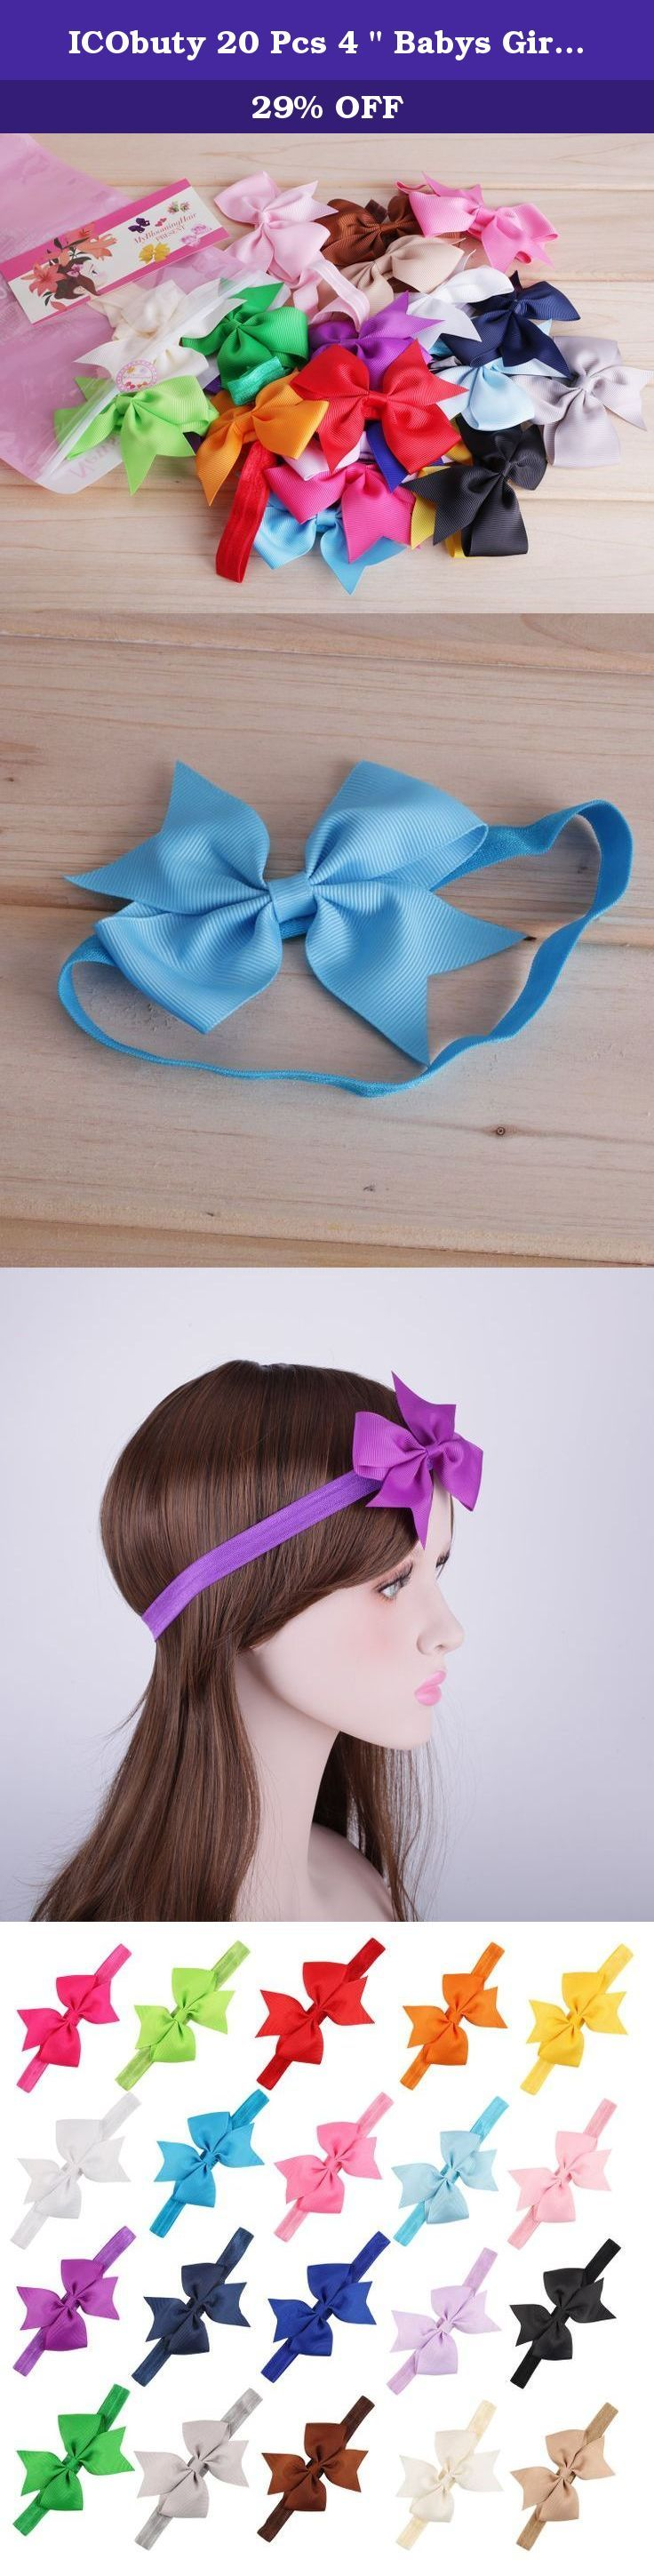 """ICObuty 20 Pcs 4 """" Babys Girls Hair Bows Hair band For NewbornToddlers. Sometimes,Some occasions, You will need a hair bow,be ready at any time This set of 20 different color baby girl hair bow are extremely adorable, great for all occasions. they are sure to please mothers and daughters."""